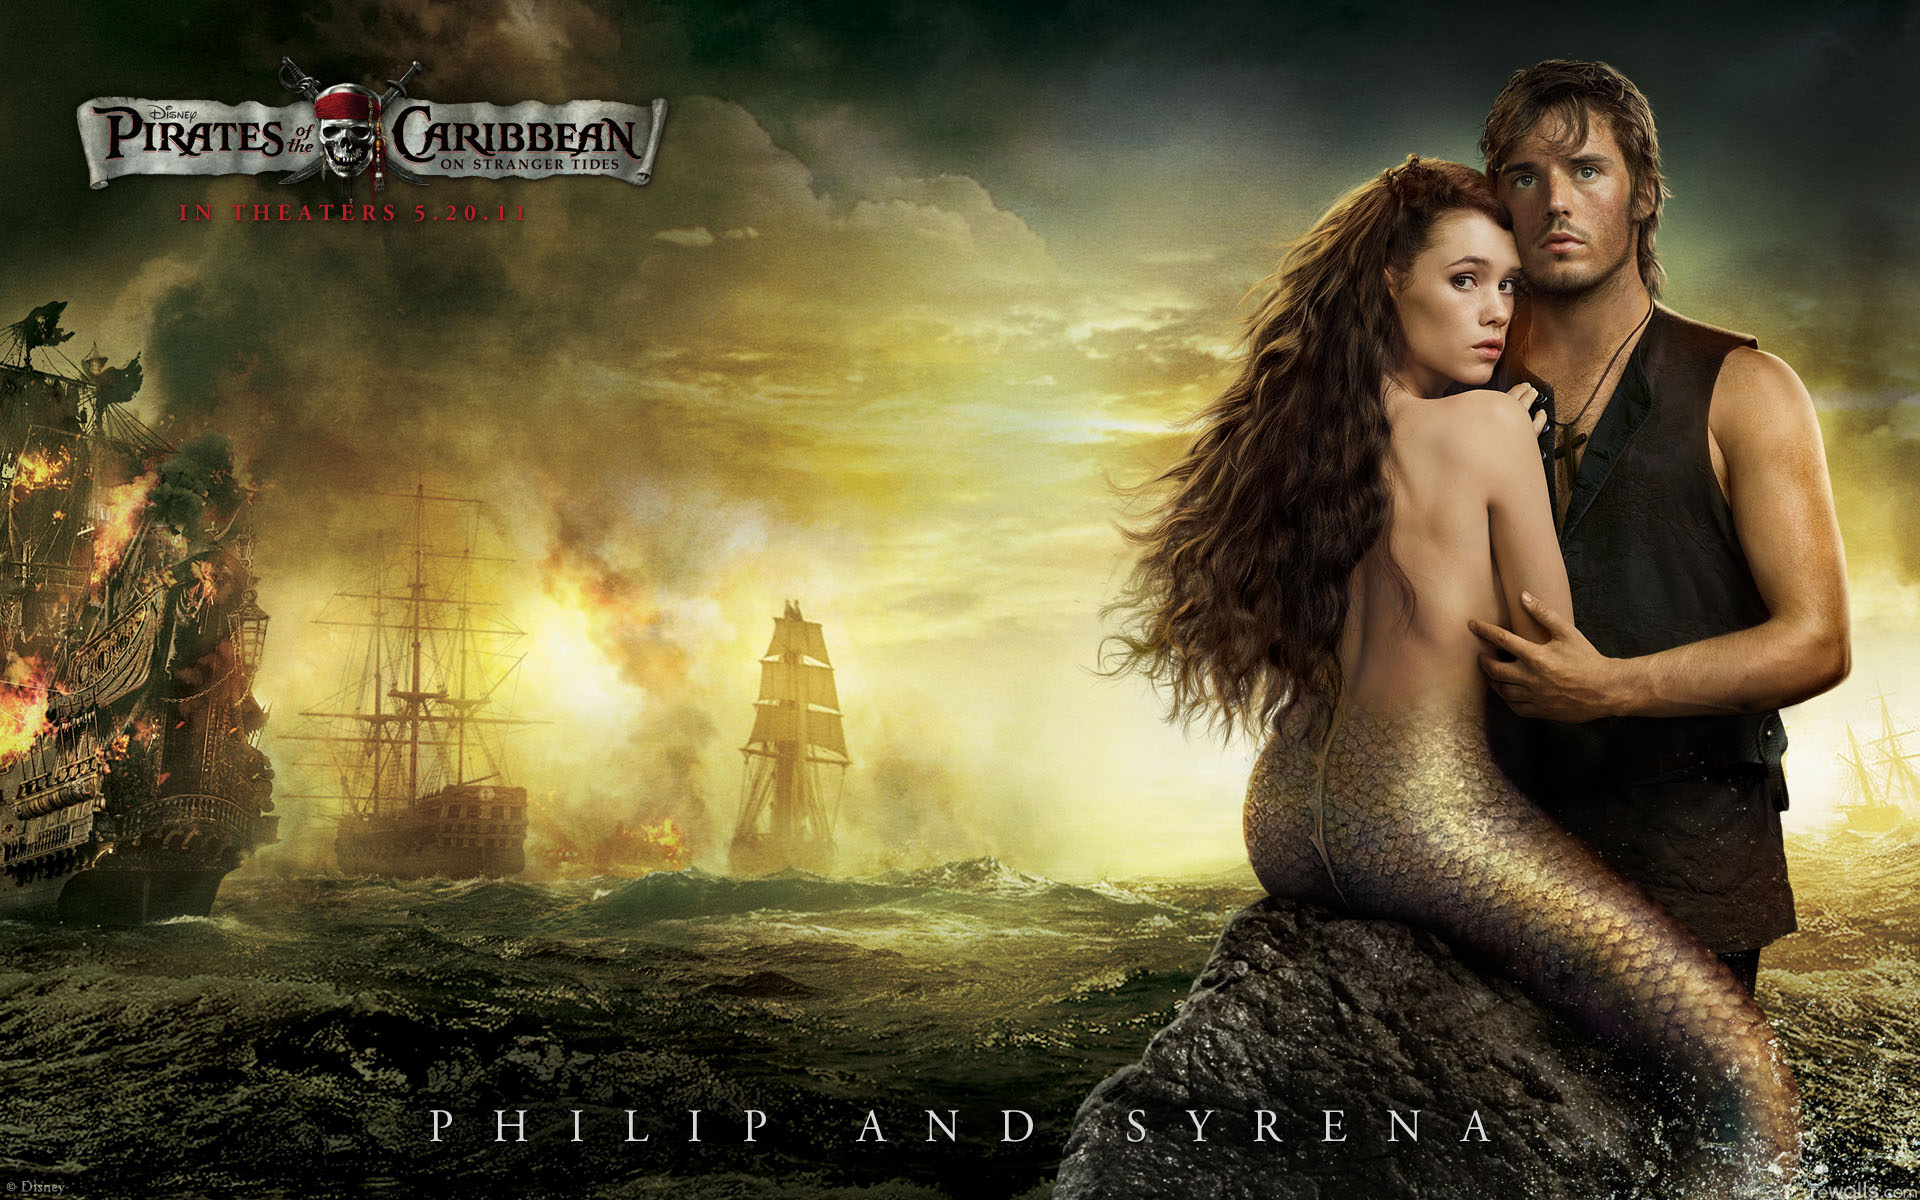 Philip and Syrena in Pirates 4